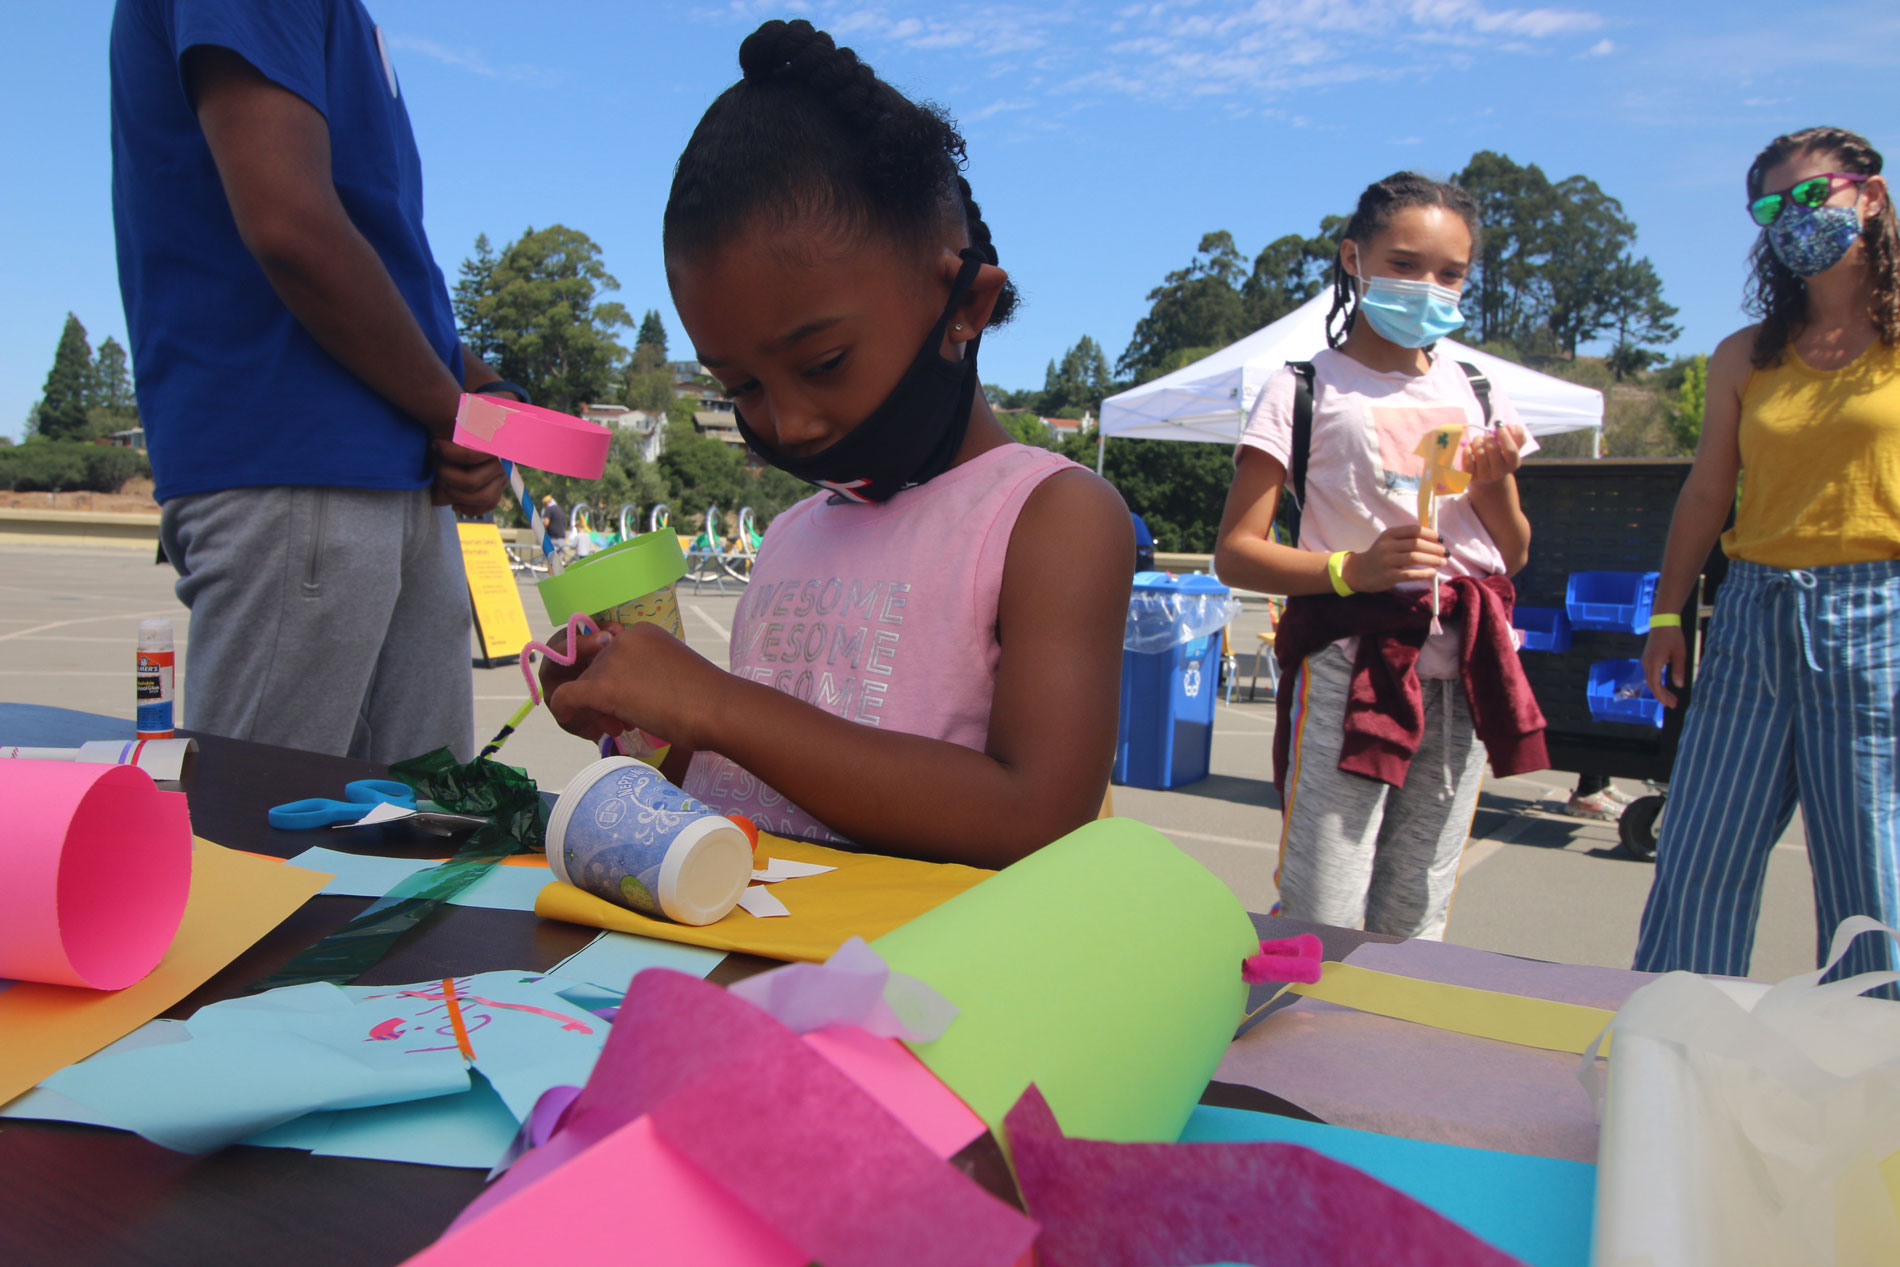 A child constructing a paper sculpture during Summer Fundays at The Lawrence